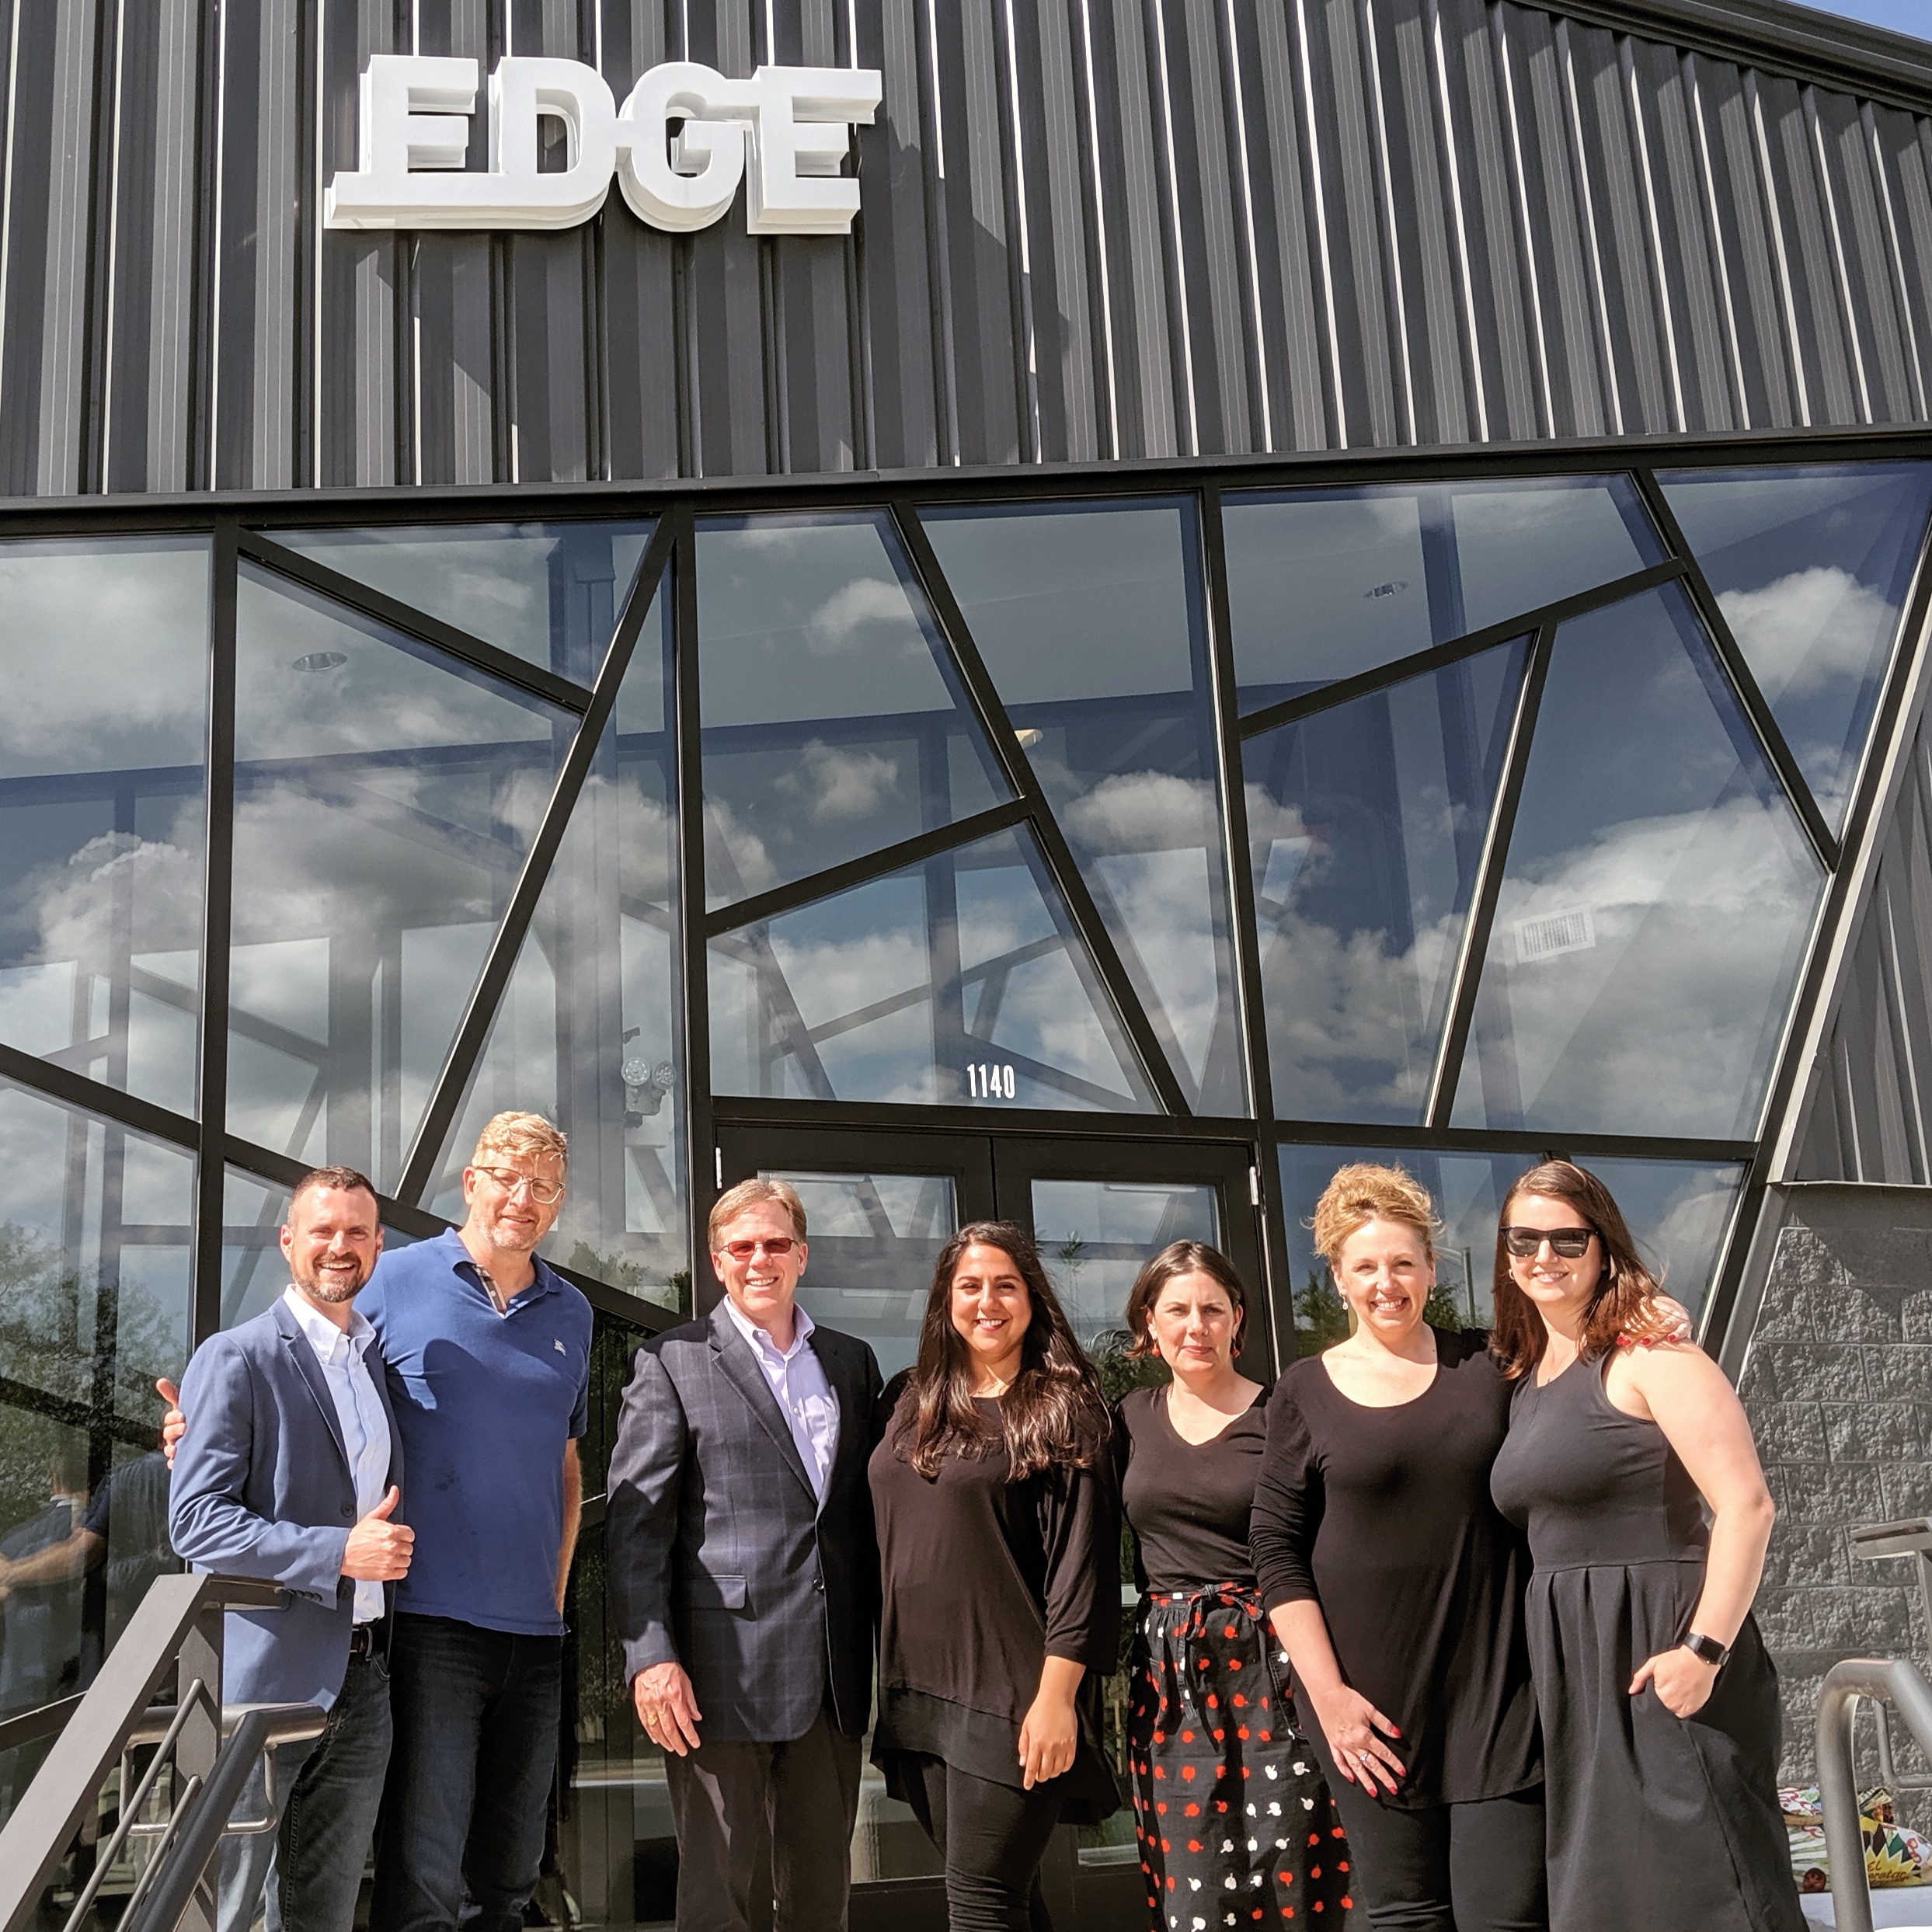 Ohio Restaurant Association visits the EDGE. June 25, 2019.